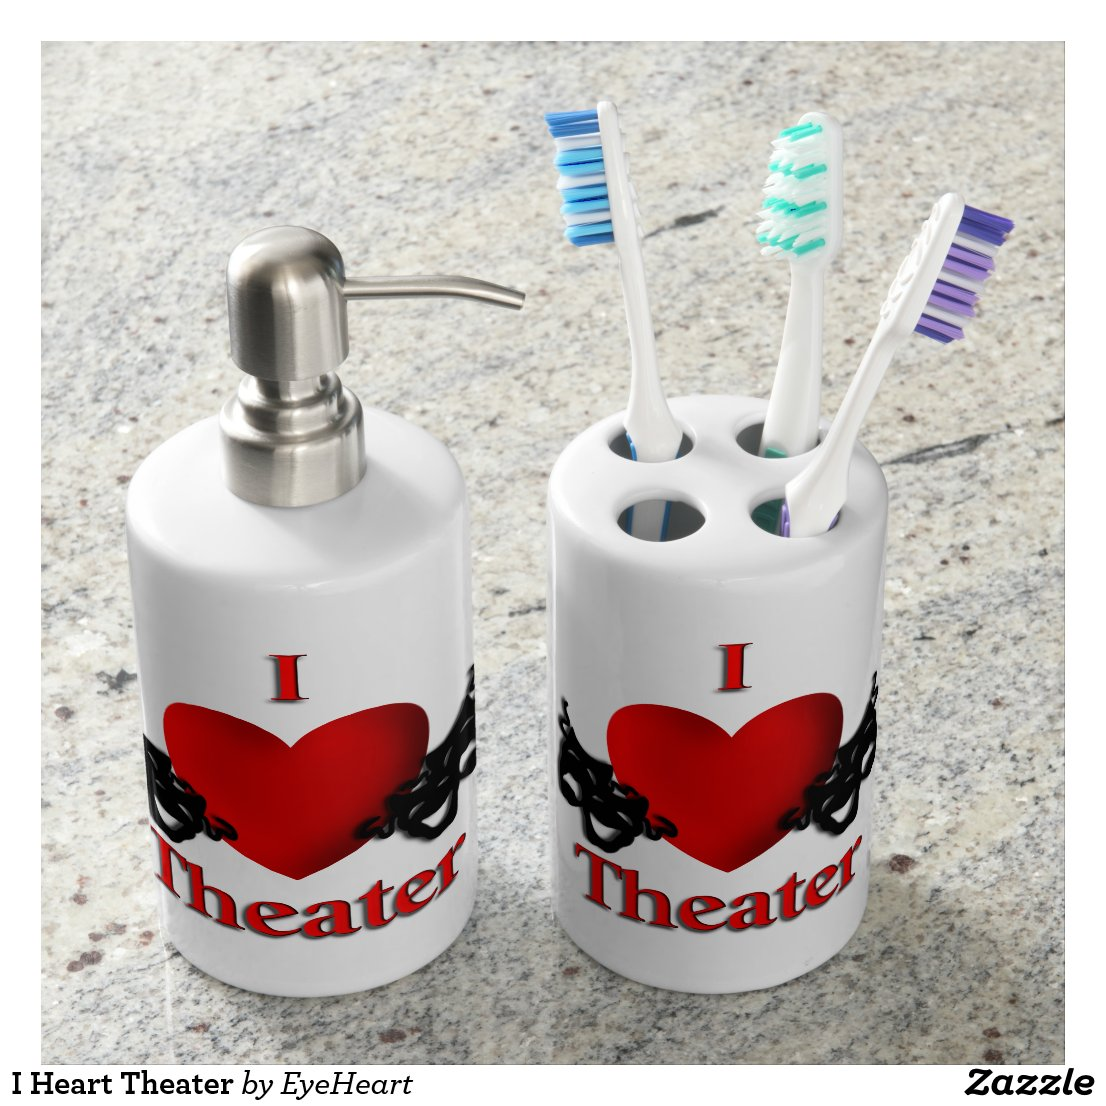 I Heart Theater Soap Dispenser & Toothbrush Holder